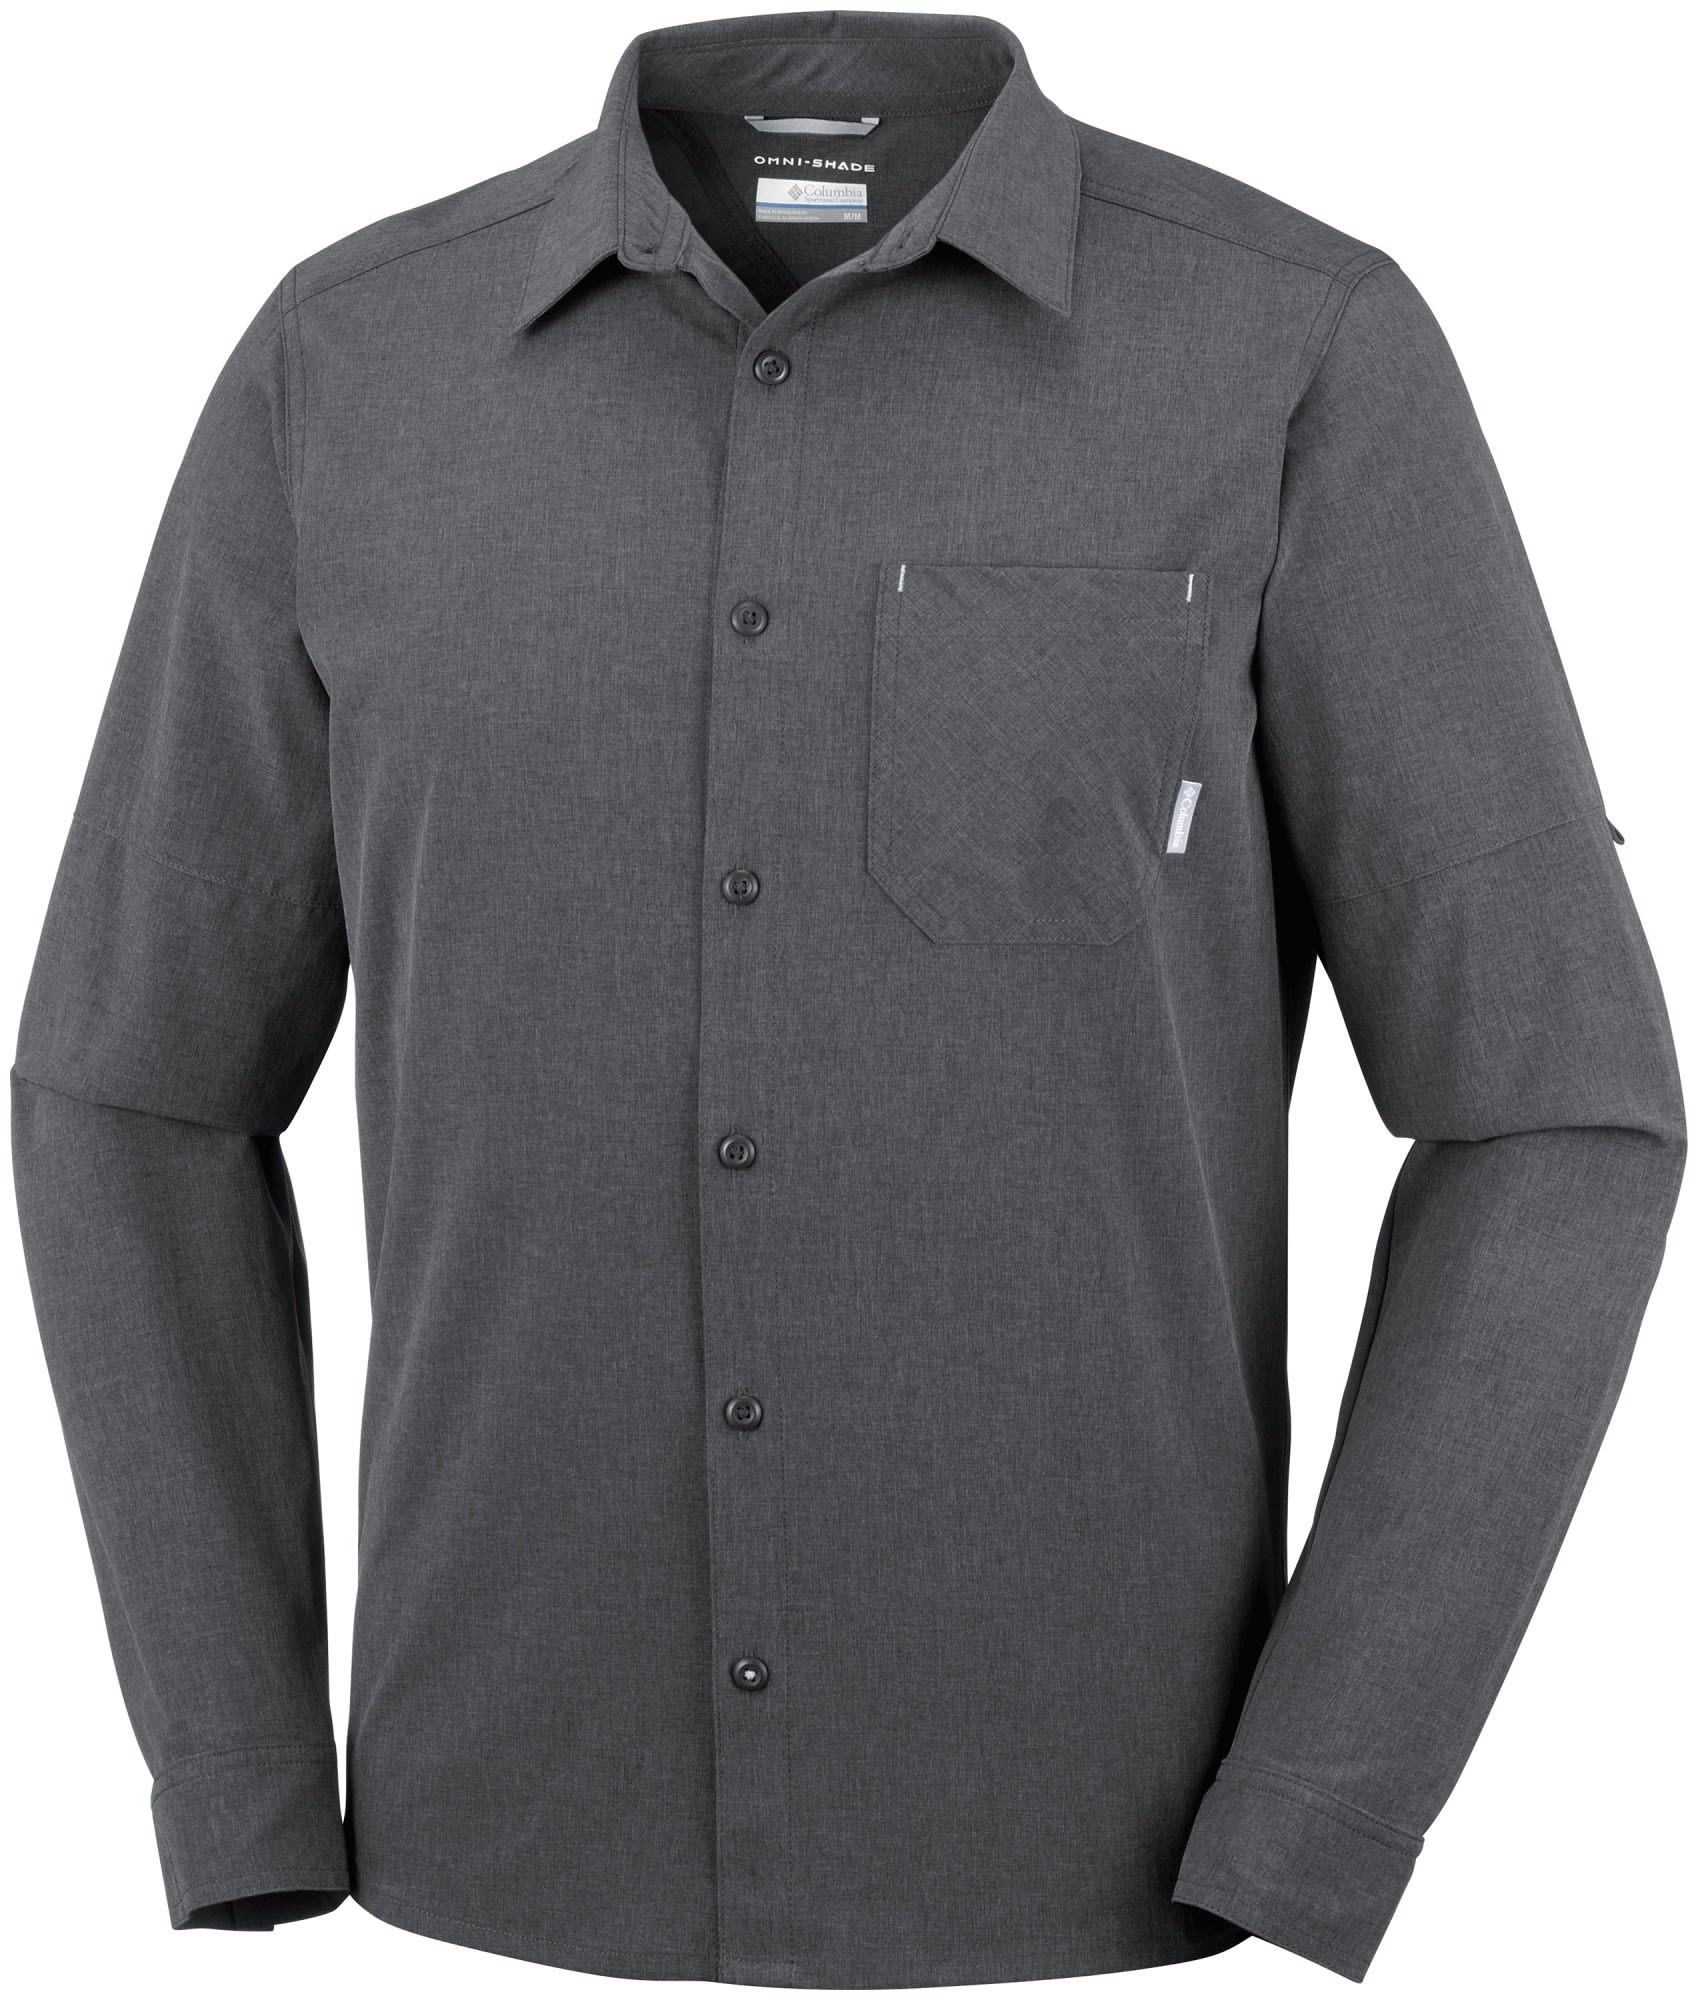 Columbia Triple Canyon Long Sleeve Shirt Grau, Male Langarm-Hemd, L